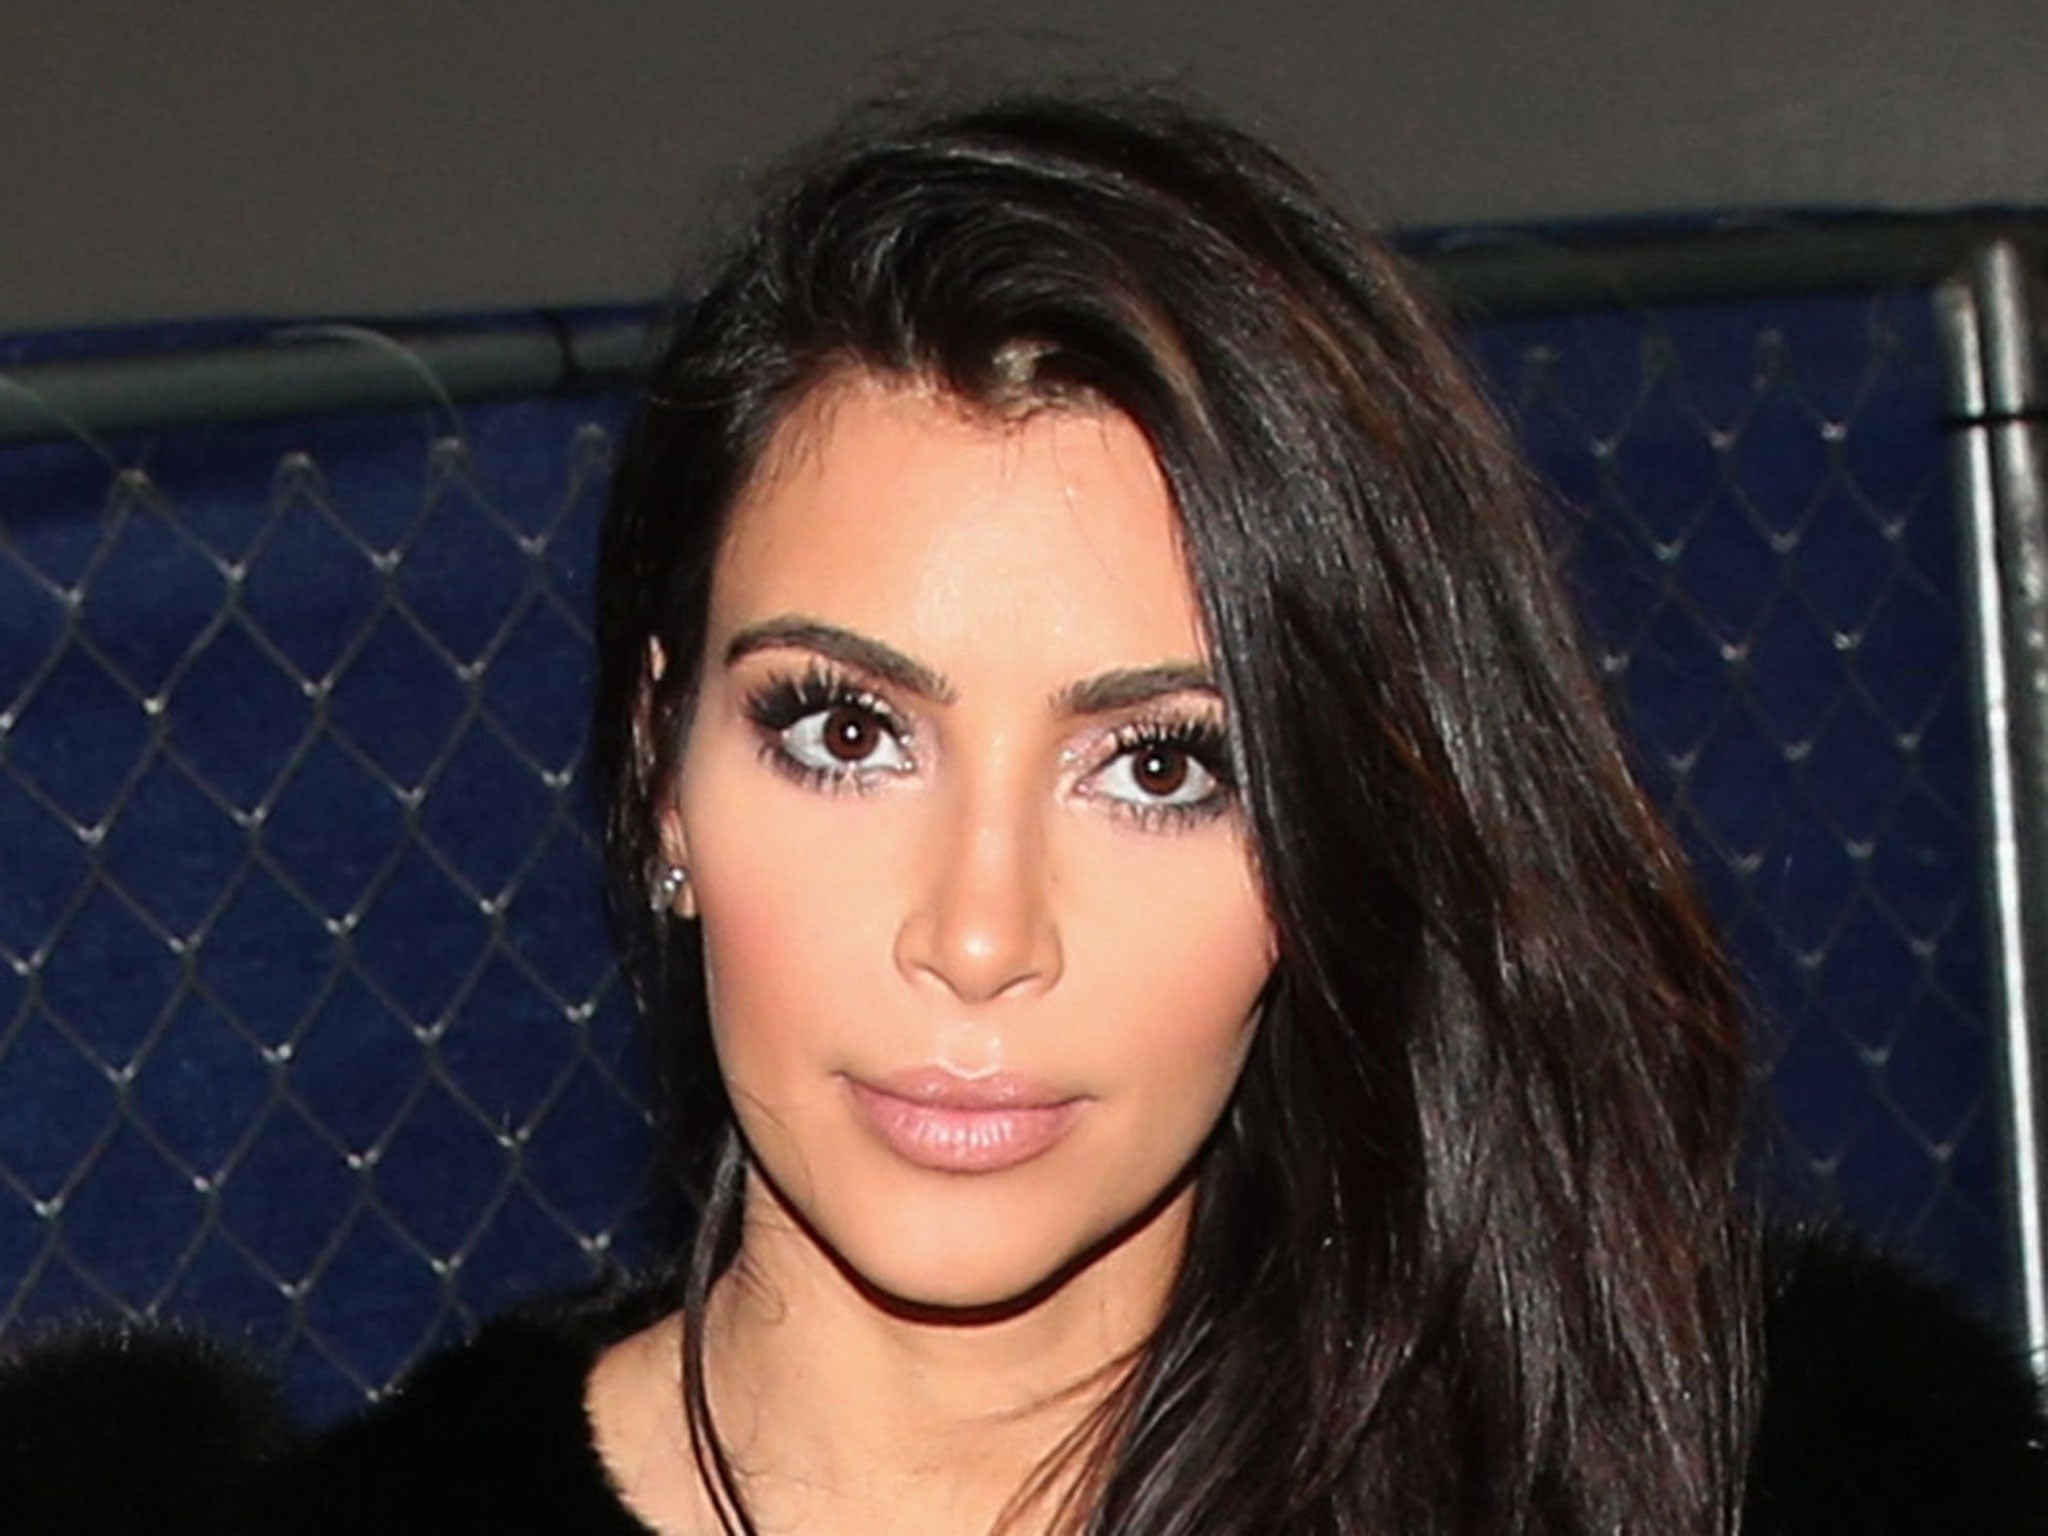 Instagram Down News: Kim Kardashian's Naked Instagram Selfie Shuts Down Body